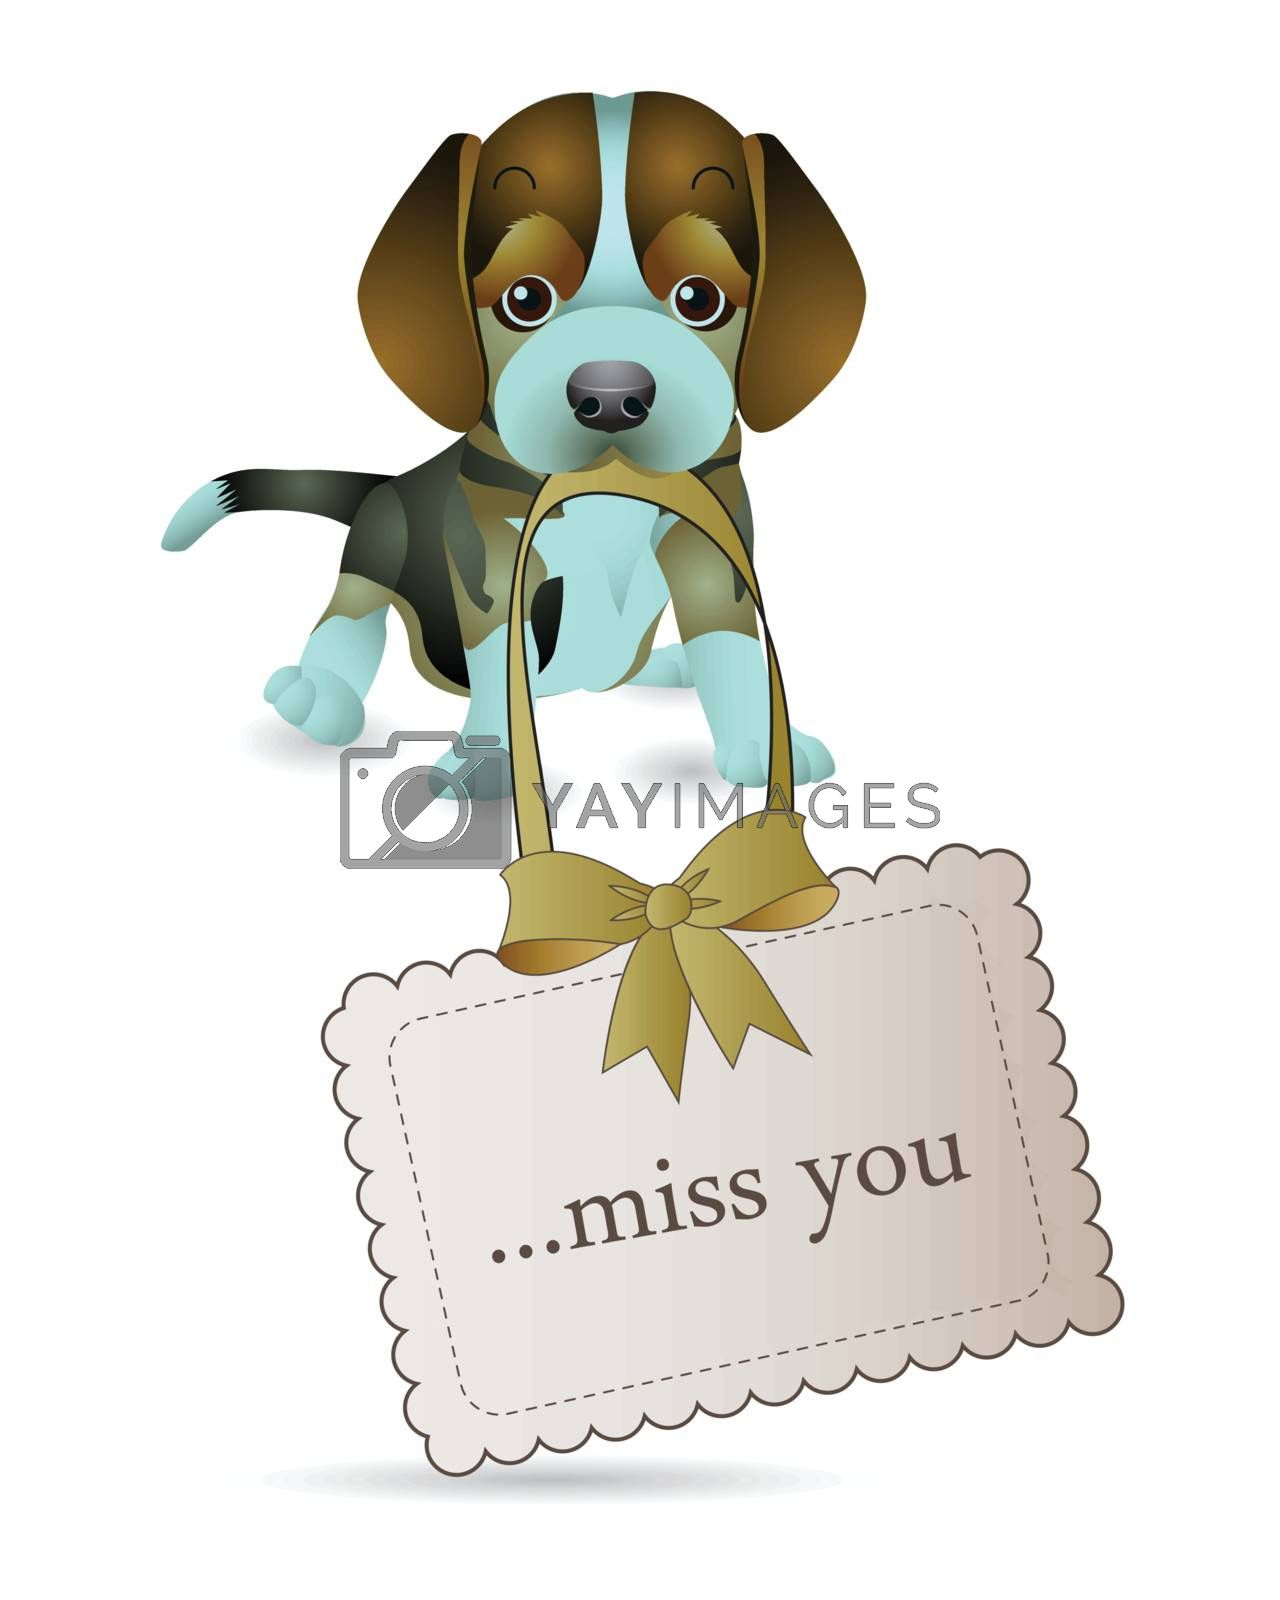 The dogs are telling miss you